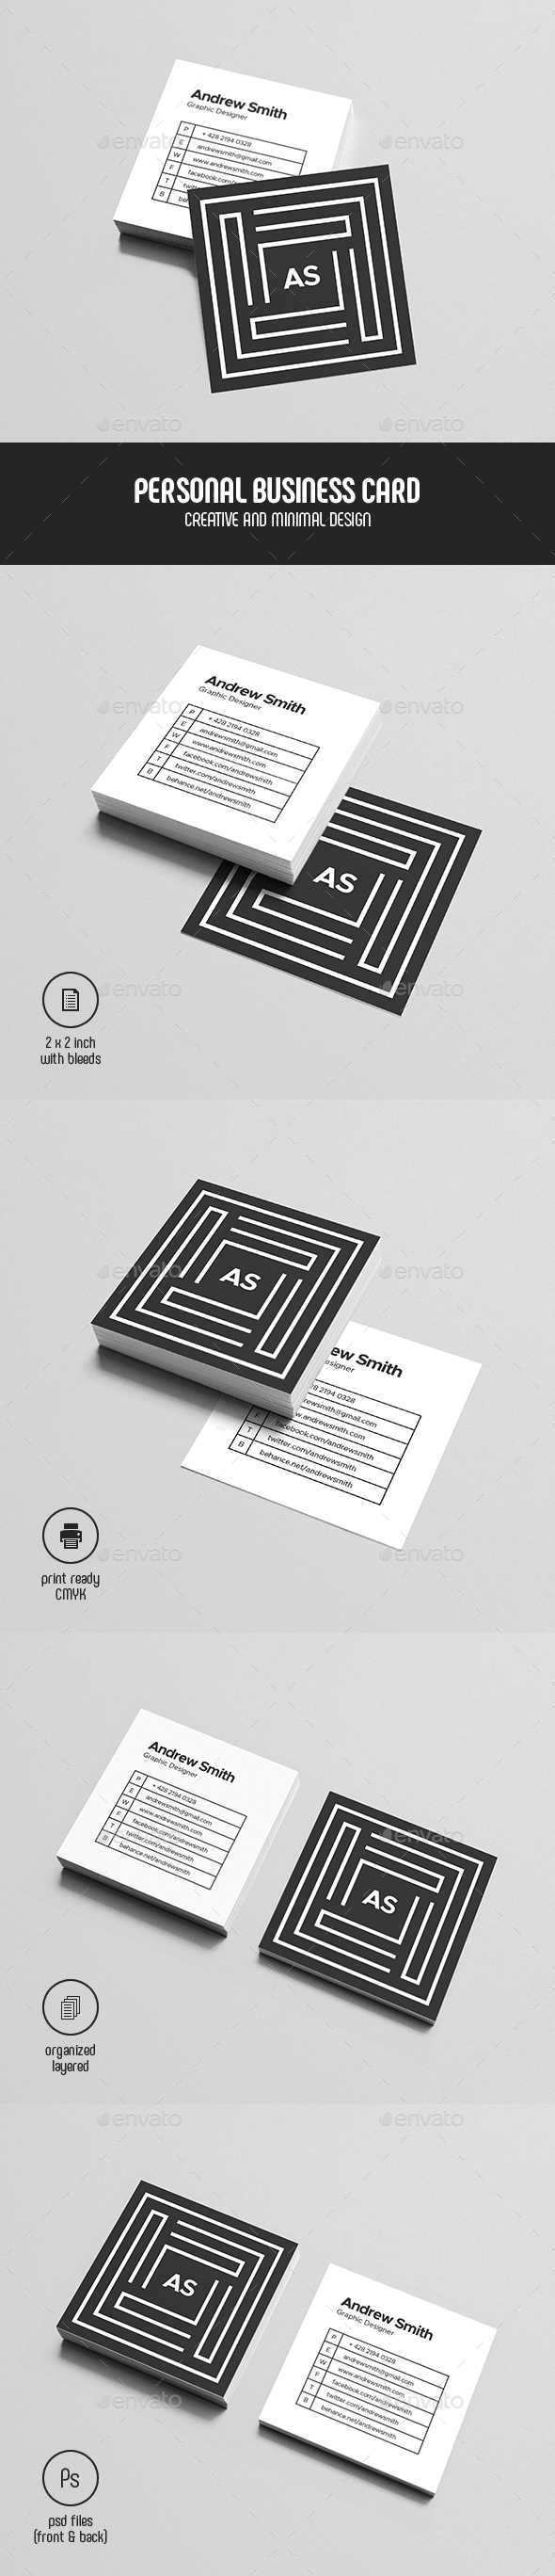 Square Personal Business Card - Corporate Business Cards